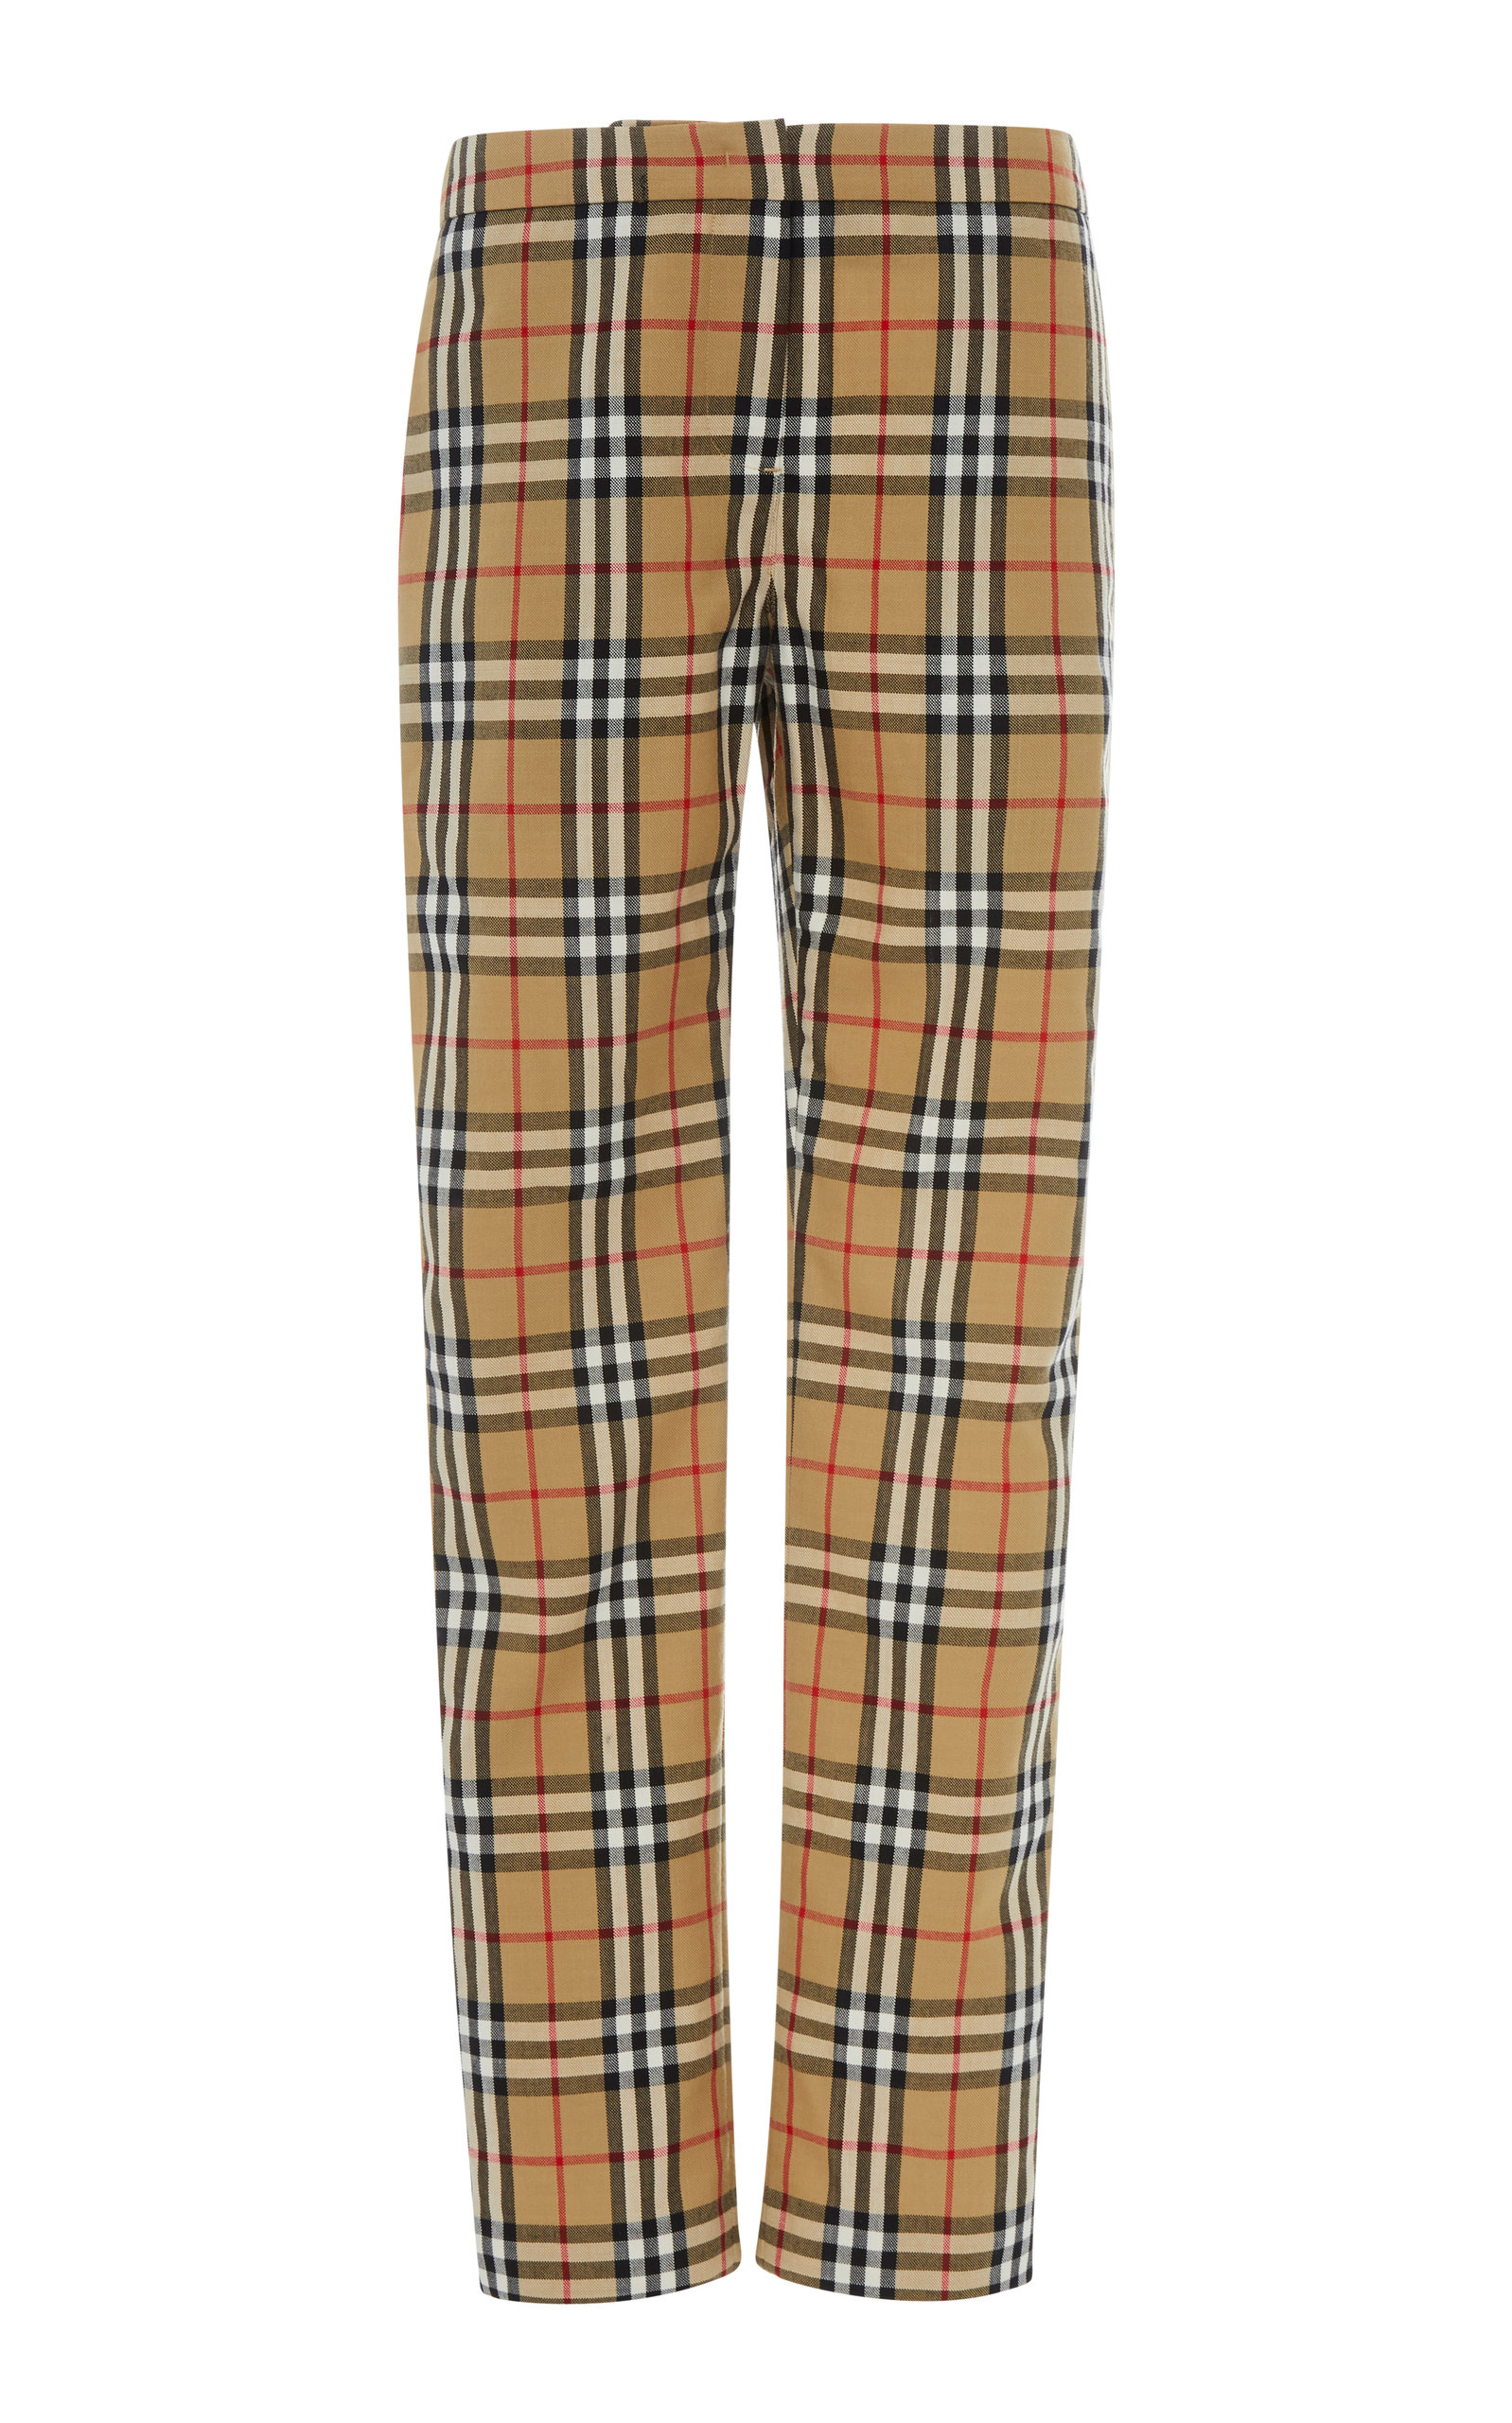 Hanover Wool-Pique Straight-Leg Trousers in Plaid